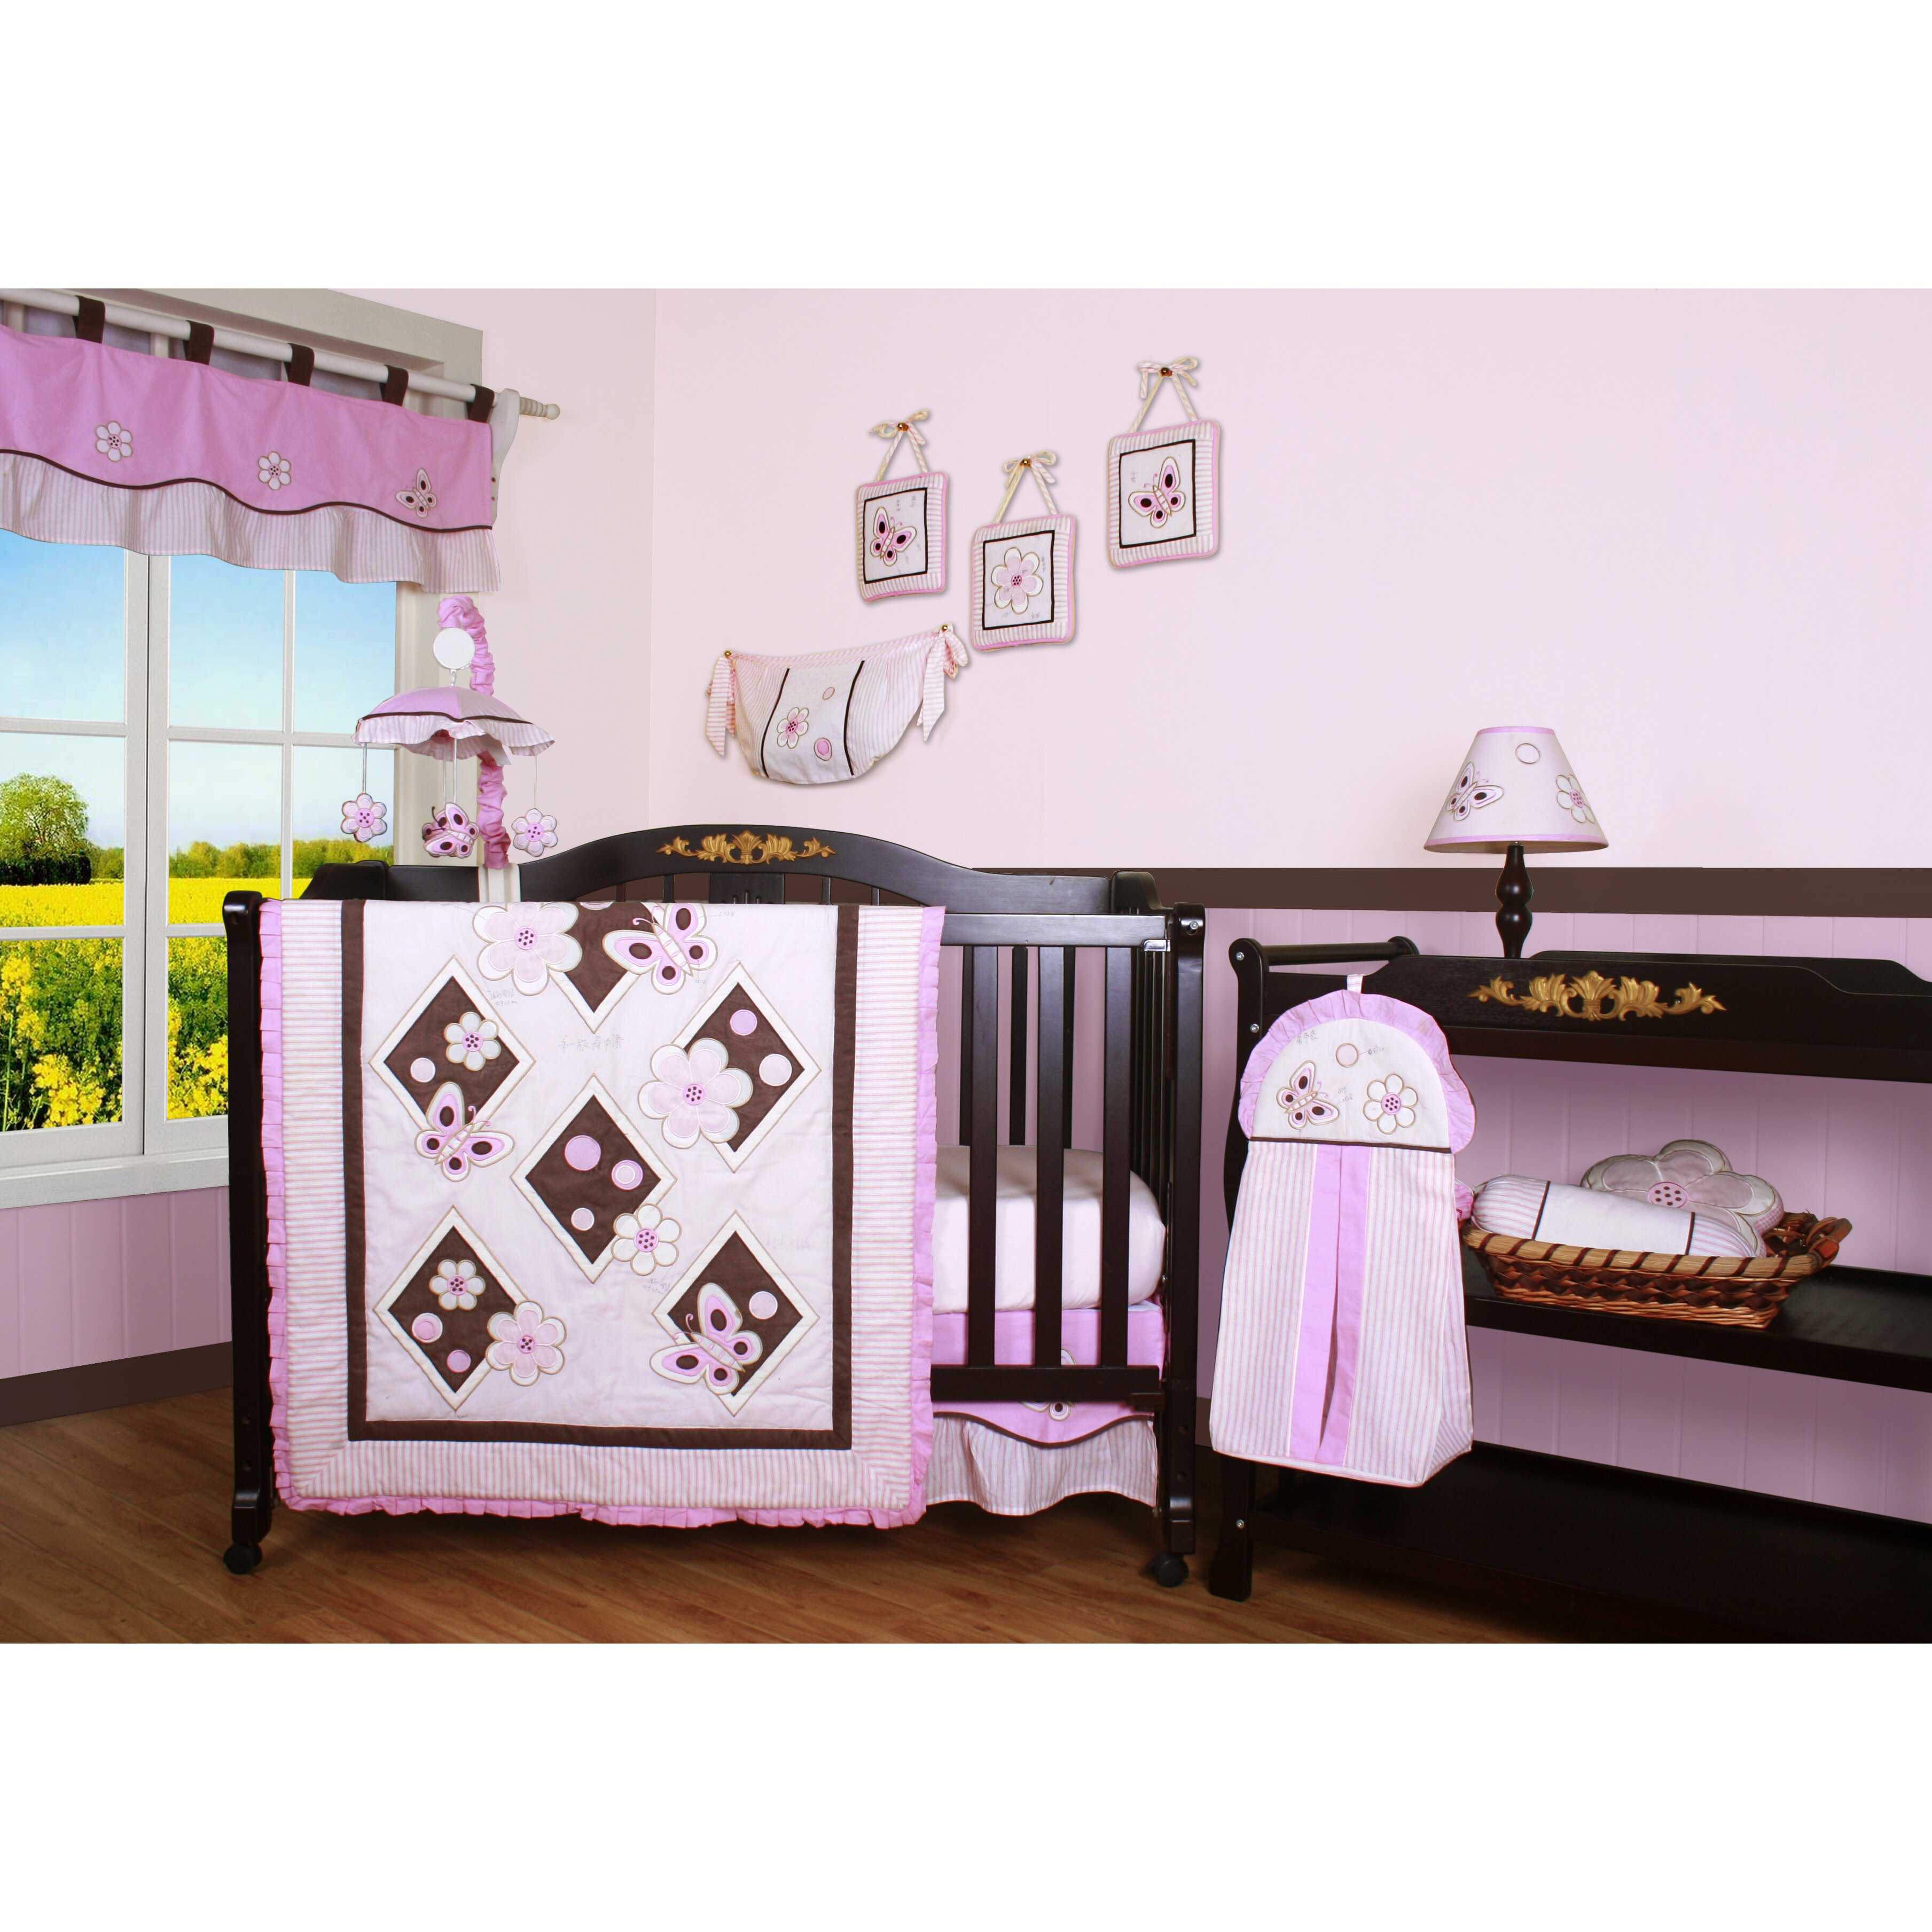 Geenny boutique butterfly 13 piece crib bedding set reviews wayfair - Geenny crib bedding sets ...